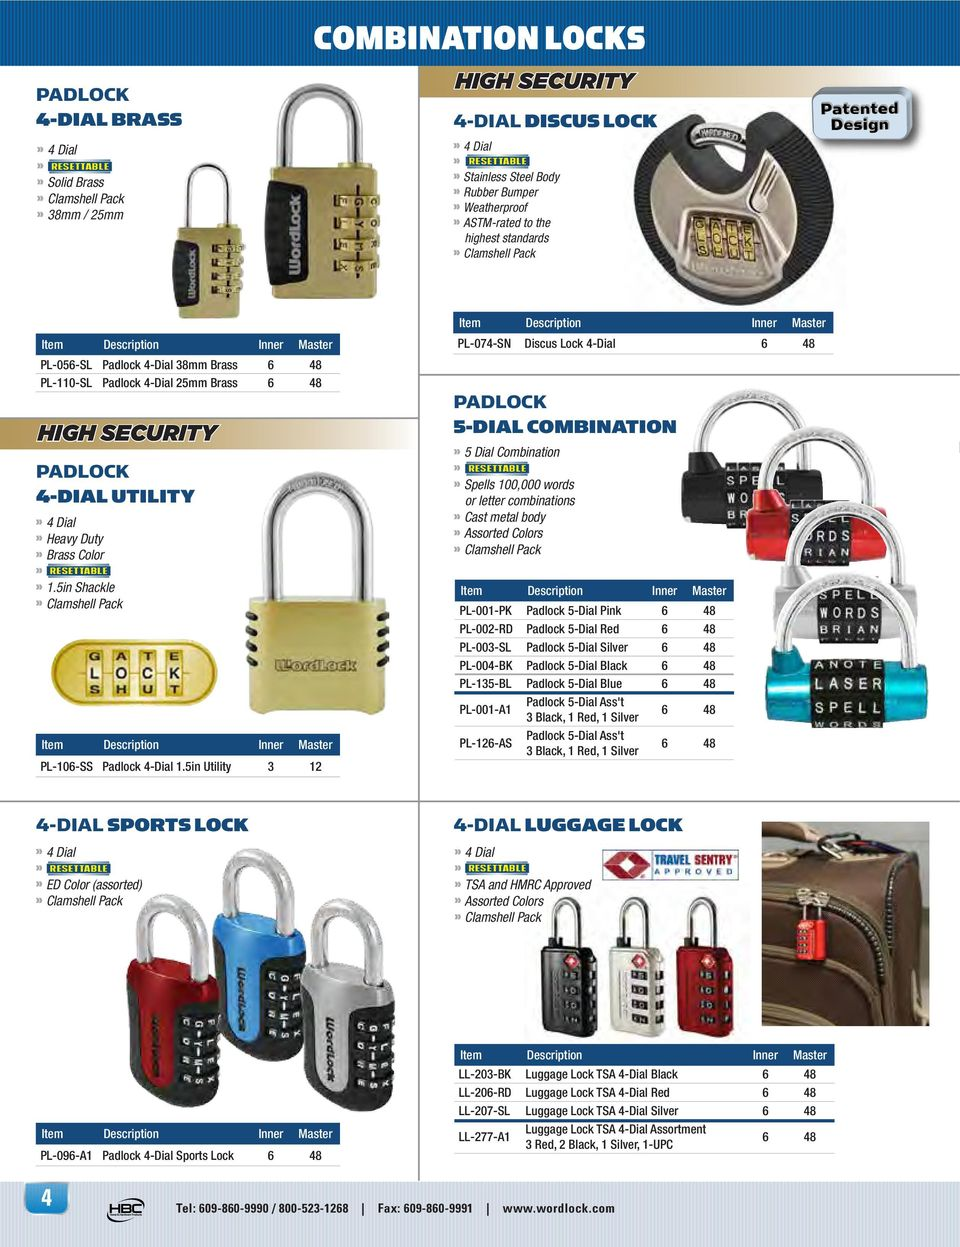 5in Shackle PL-106-SS Padlock 4-Dial 1.